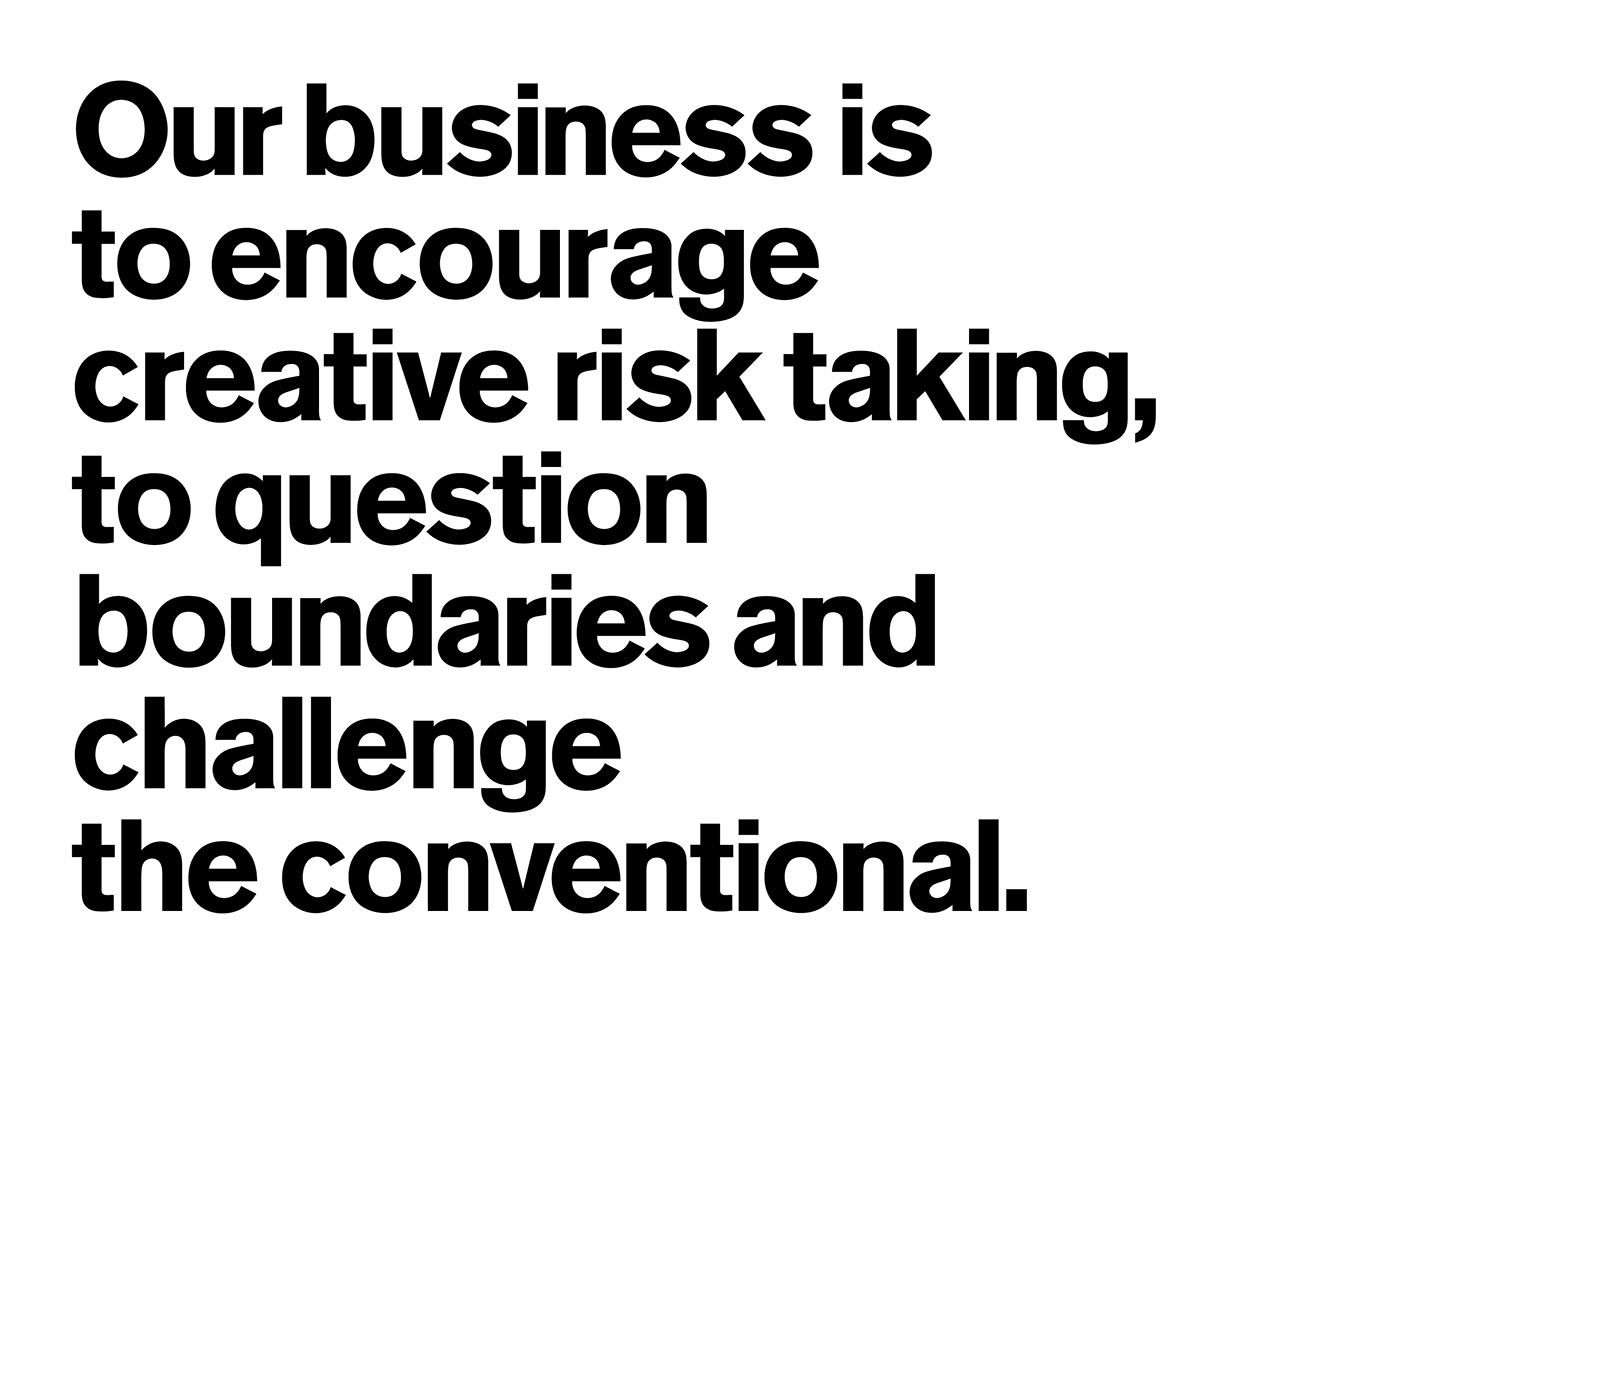 Our business is to encourage creative risk taking, to question boundaries and challenge the conventional.